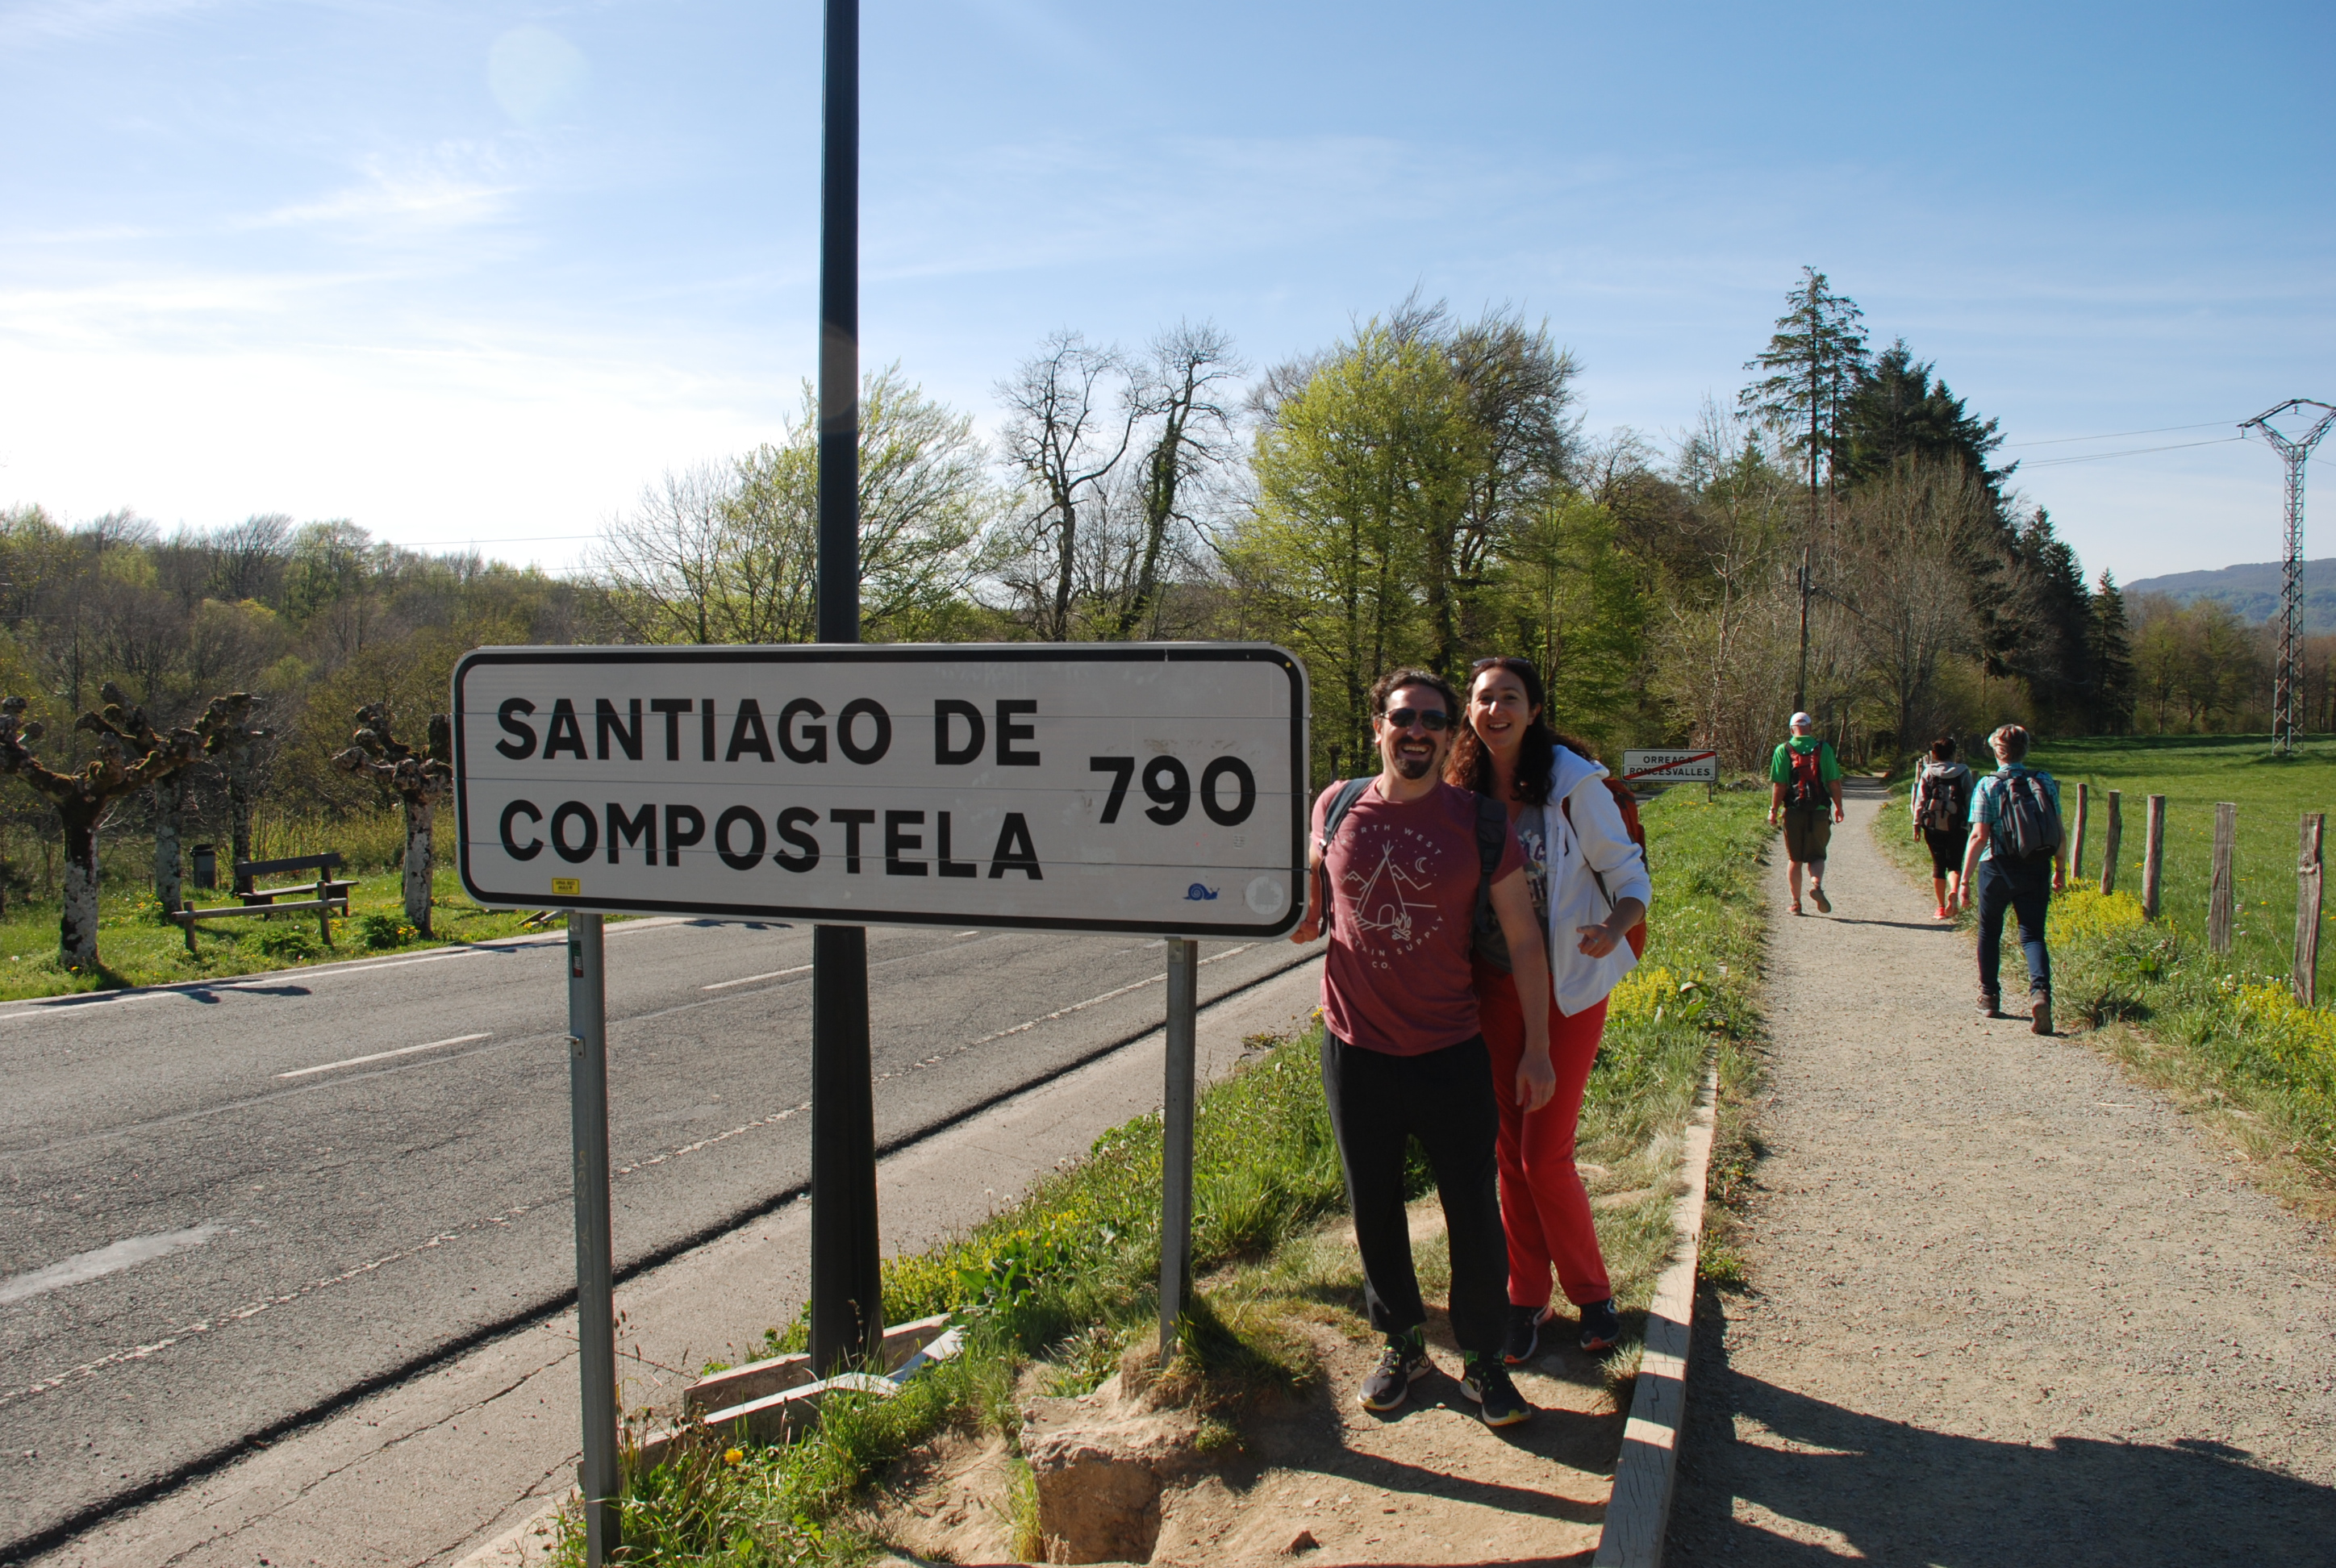 santiago de compostela cougars personals Porto's top 7 weekend getaways  some may suggest that the best way to visit santiago de compostela is by walking the  with some structures dating back to.